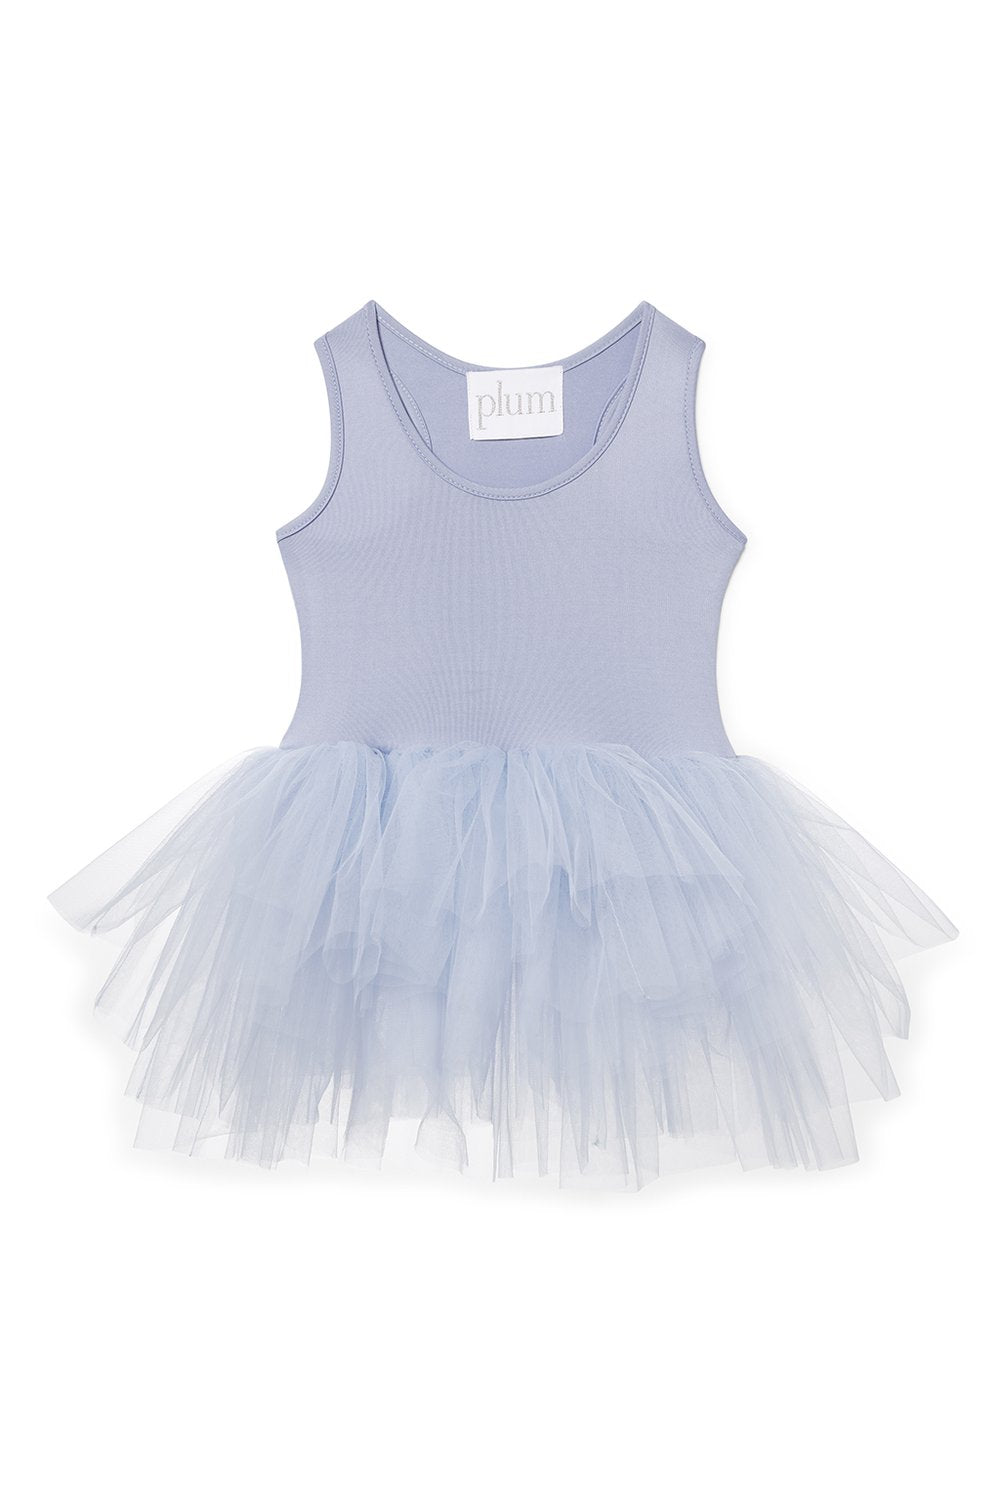 B.A.E Tutu Dress - Betty Purple